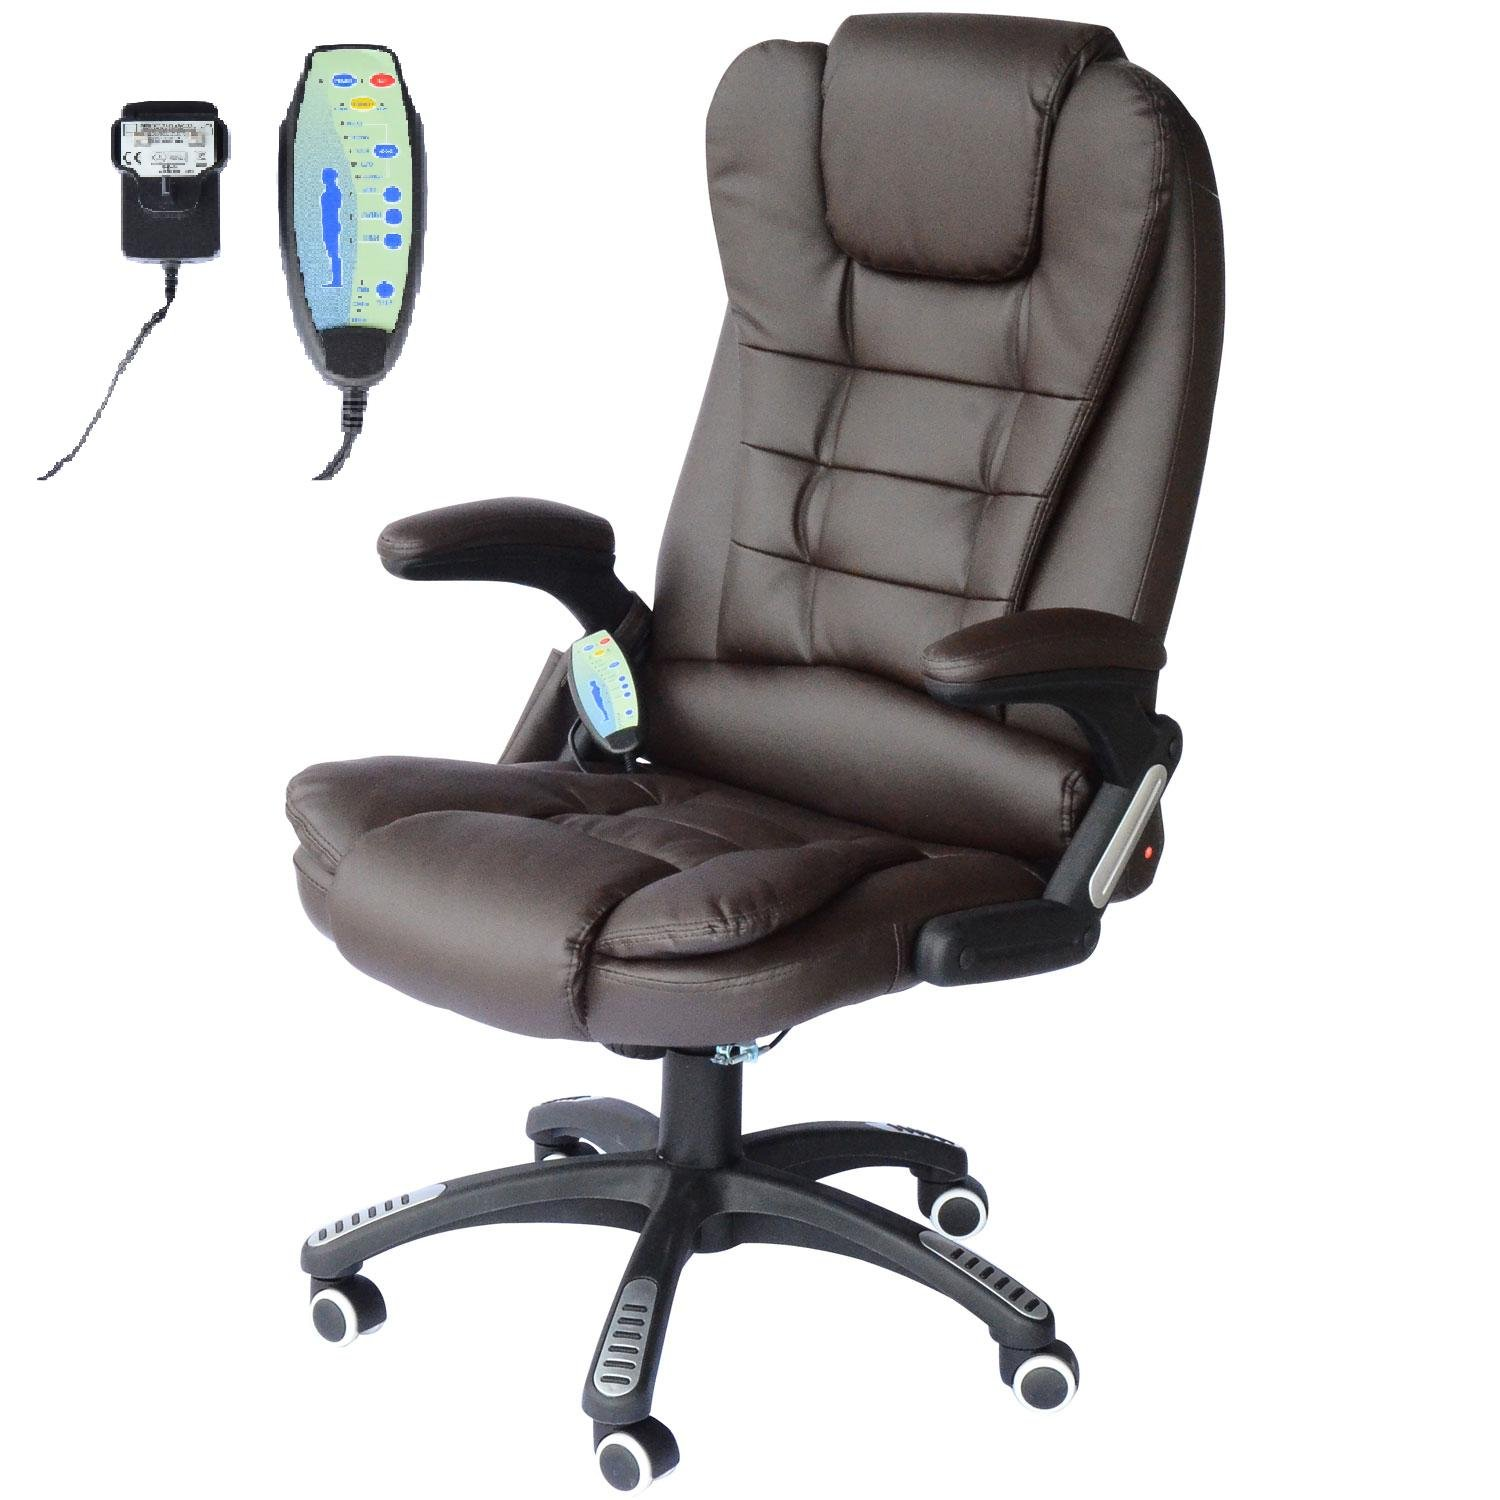 Homcom Deluxe Reclining Faux Leather Office Computer Chair 6 Point Massage High  Back Desk Work Swivel Chair Brown: Amazon.co.uk: Garden U0026 Outdoors